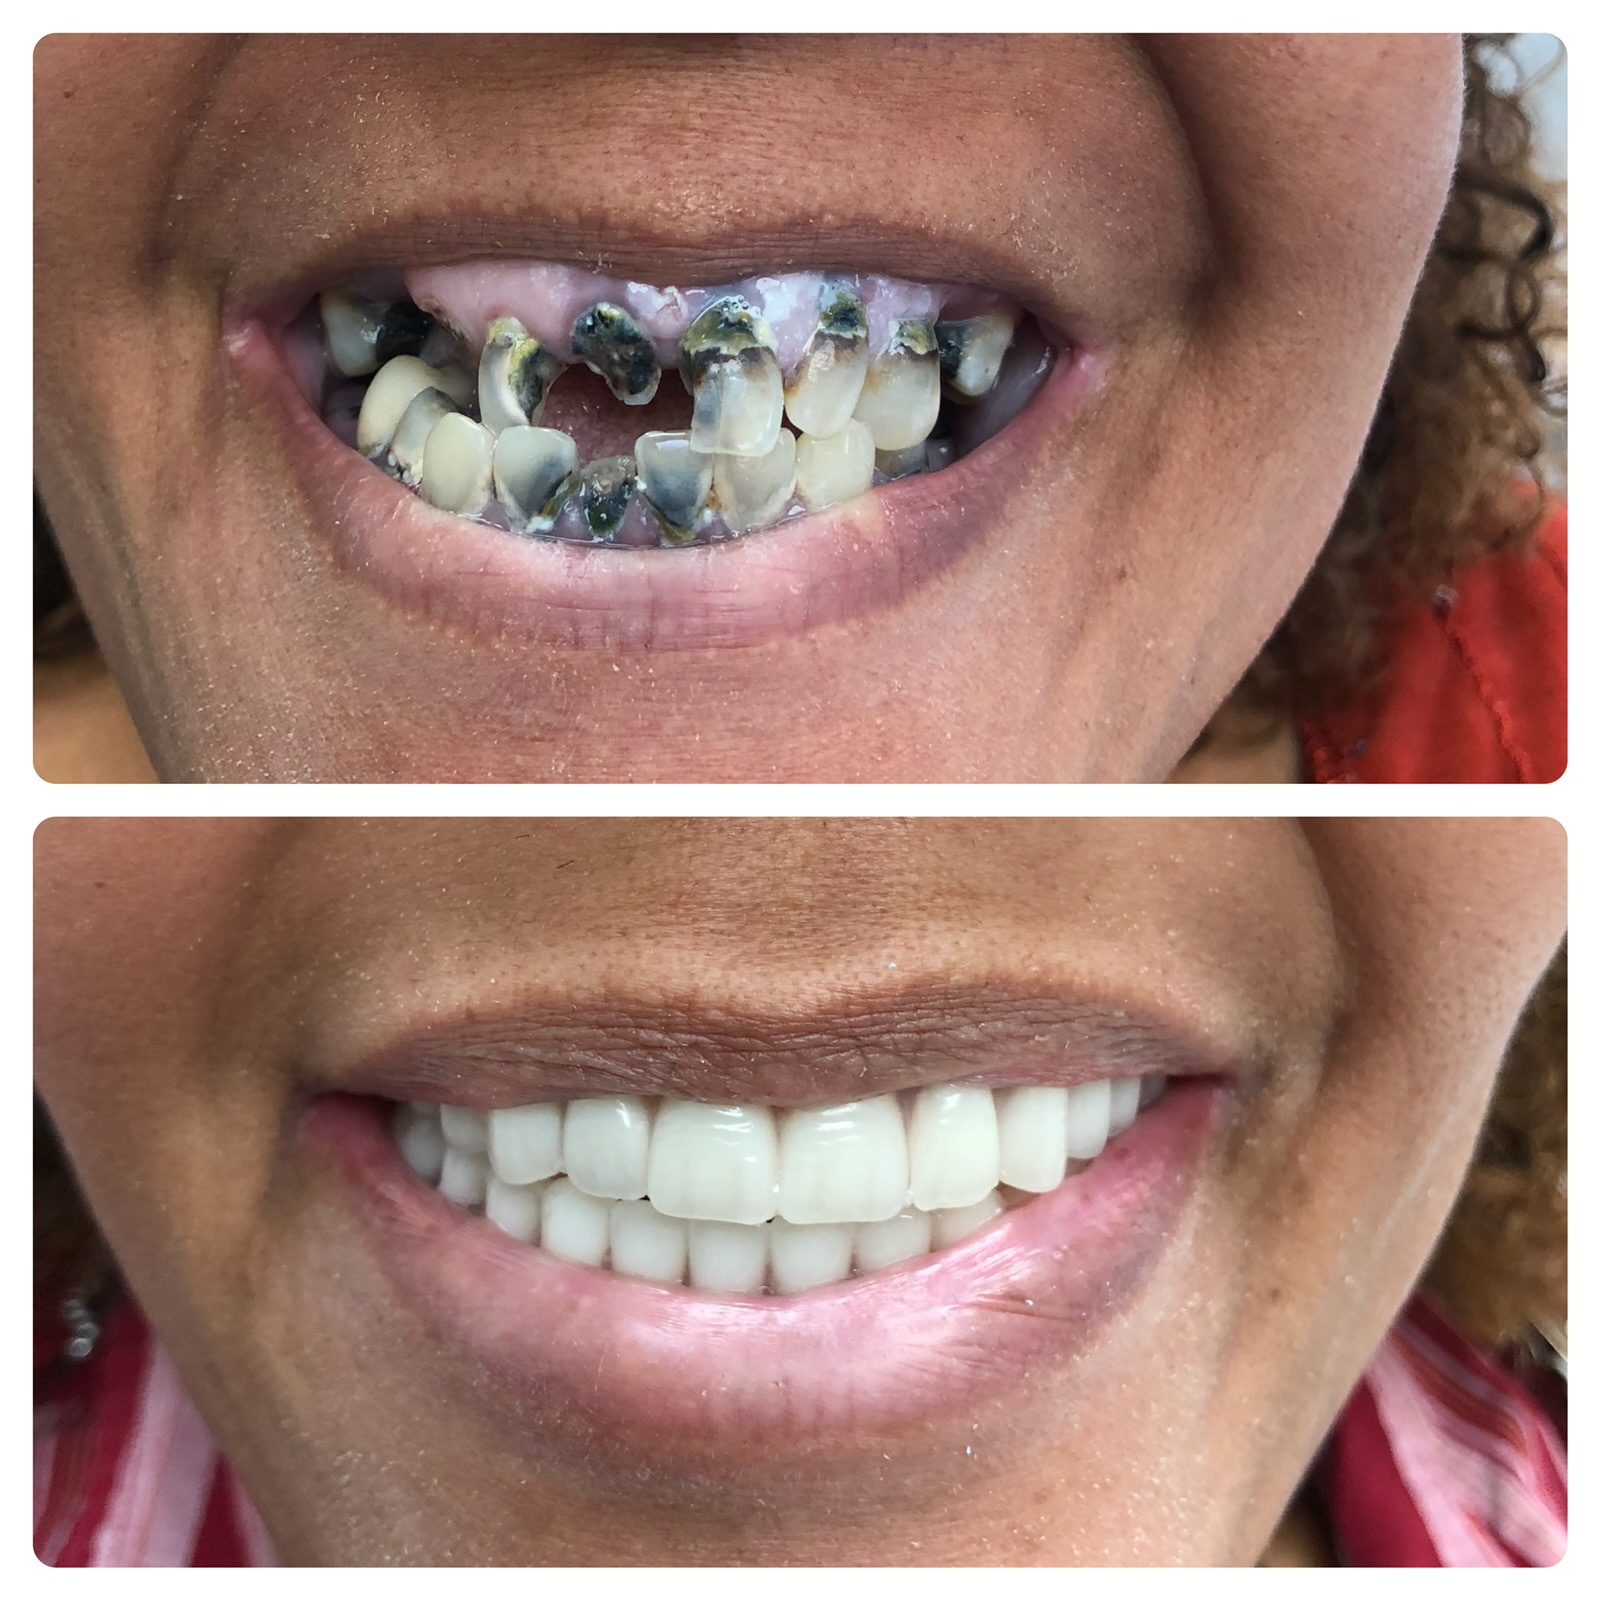 Full mouth reconstruction dental surgery